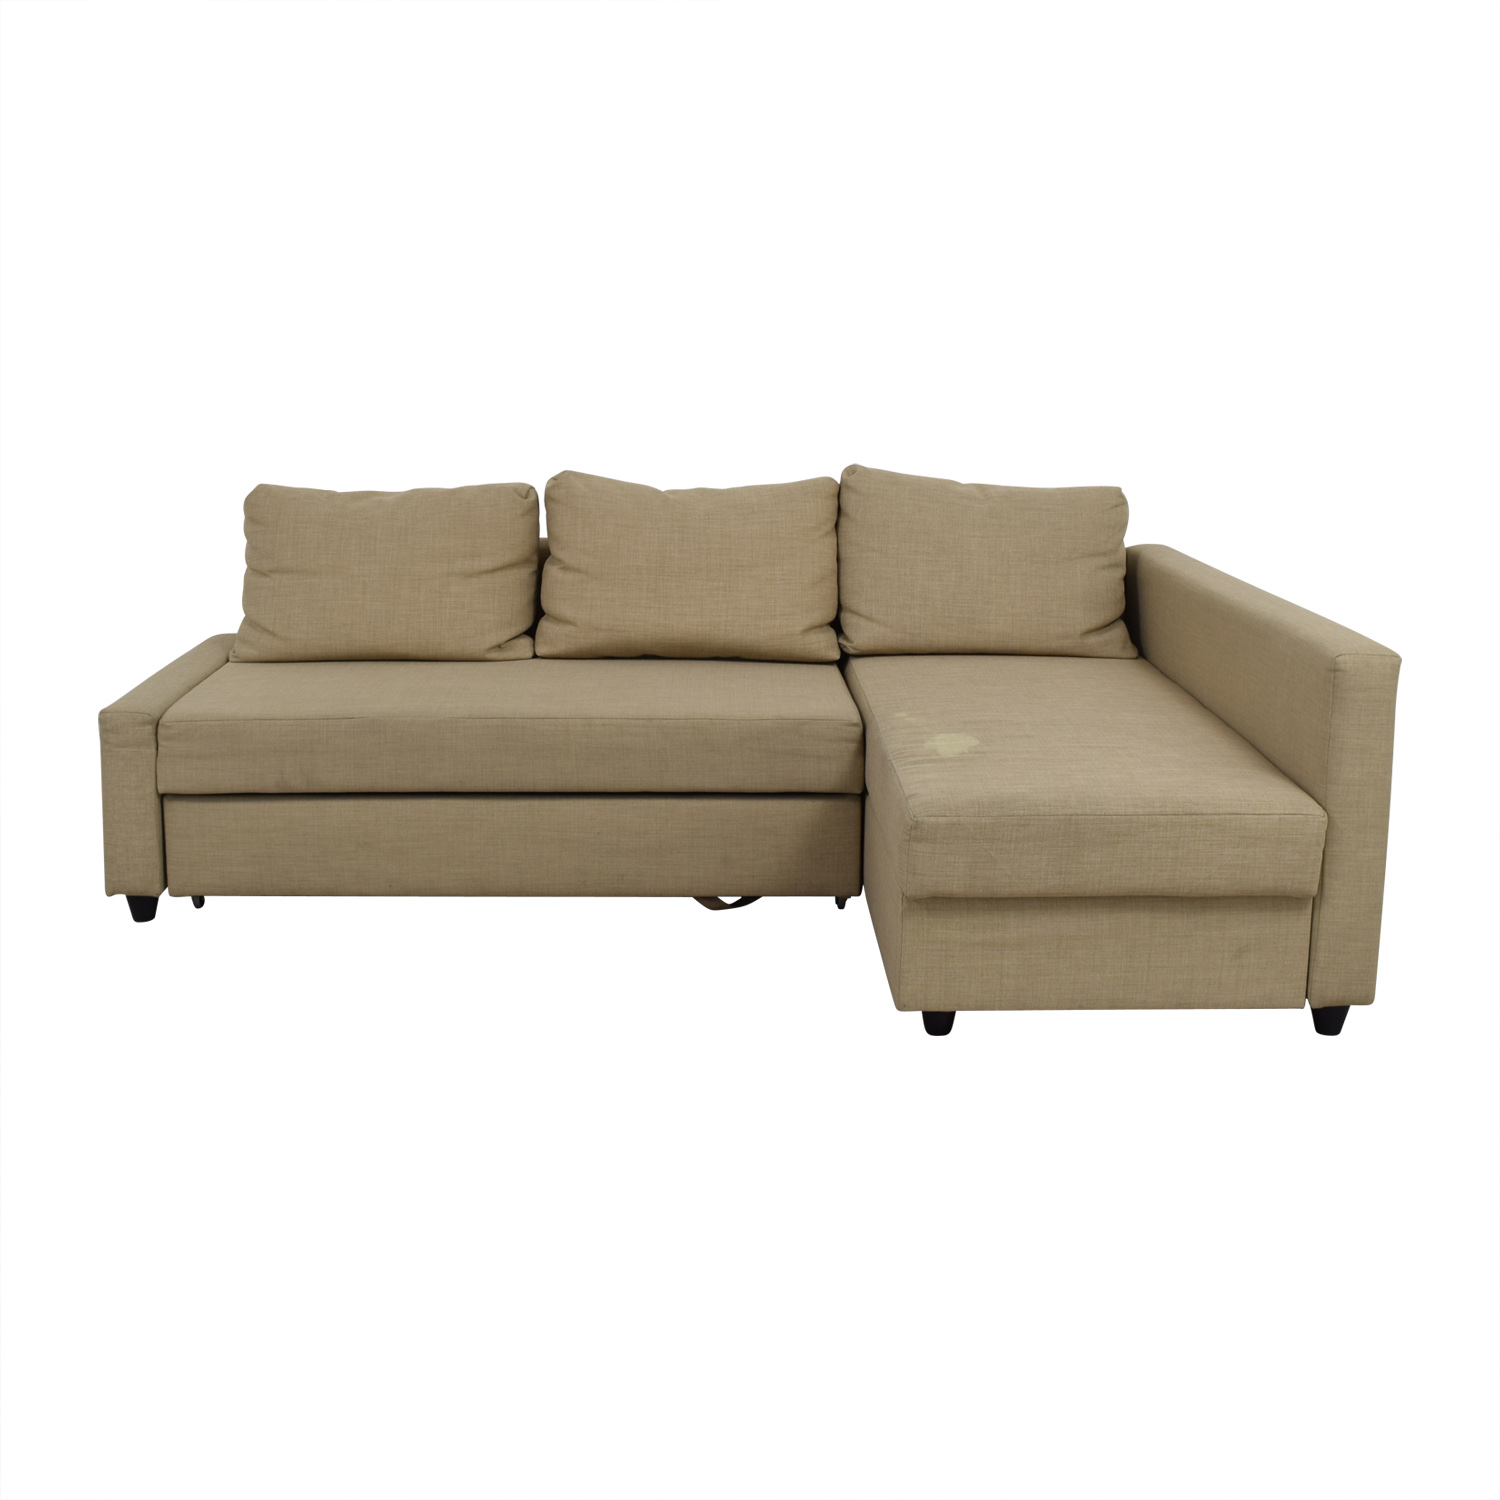 Bettsofa Ikea Friheten 79 Off Ikea Ikea Friheten Tan Sleeper Sectional Sofas